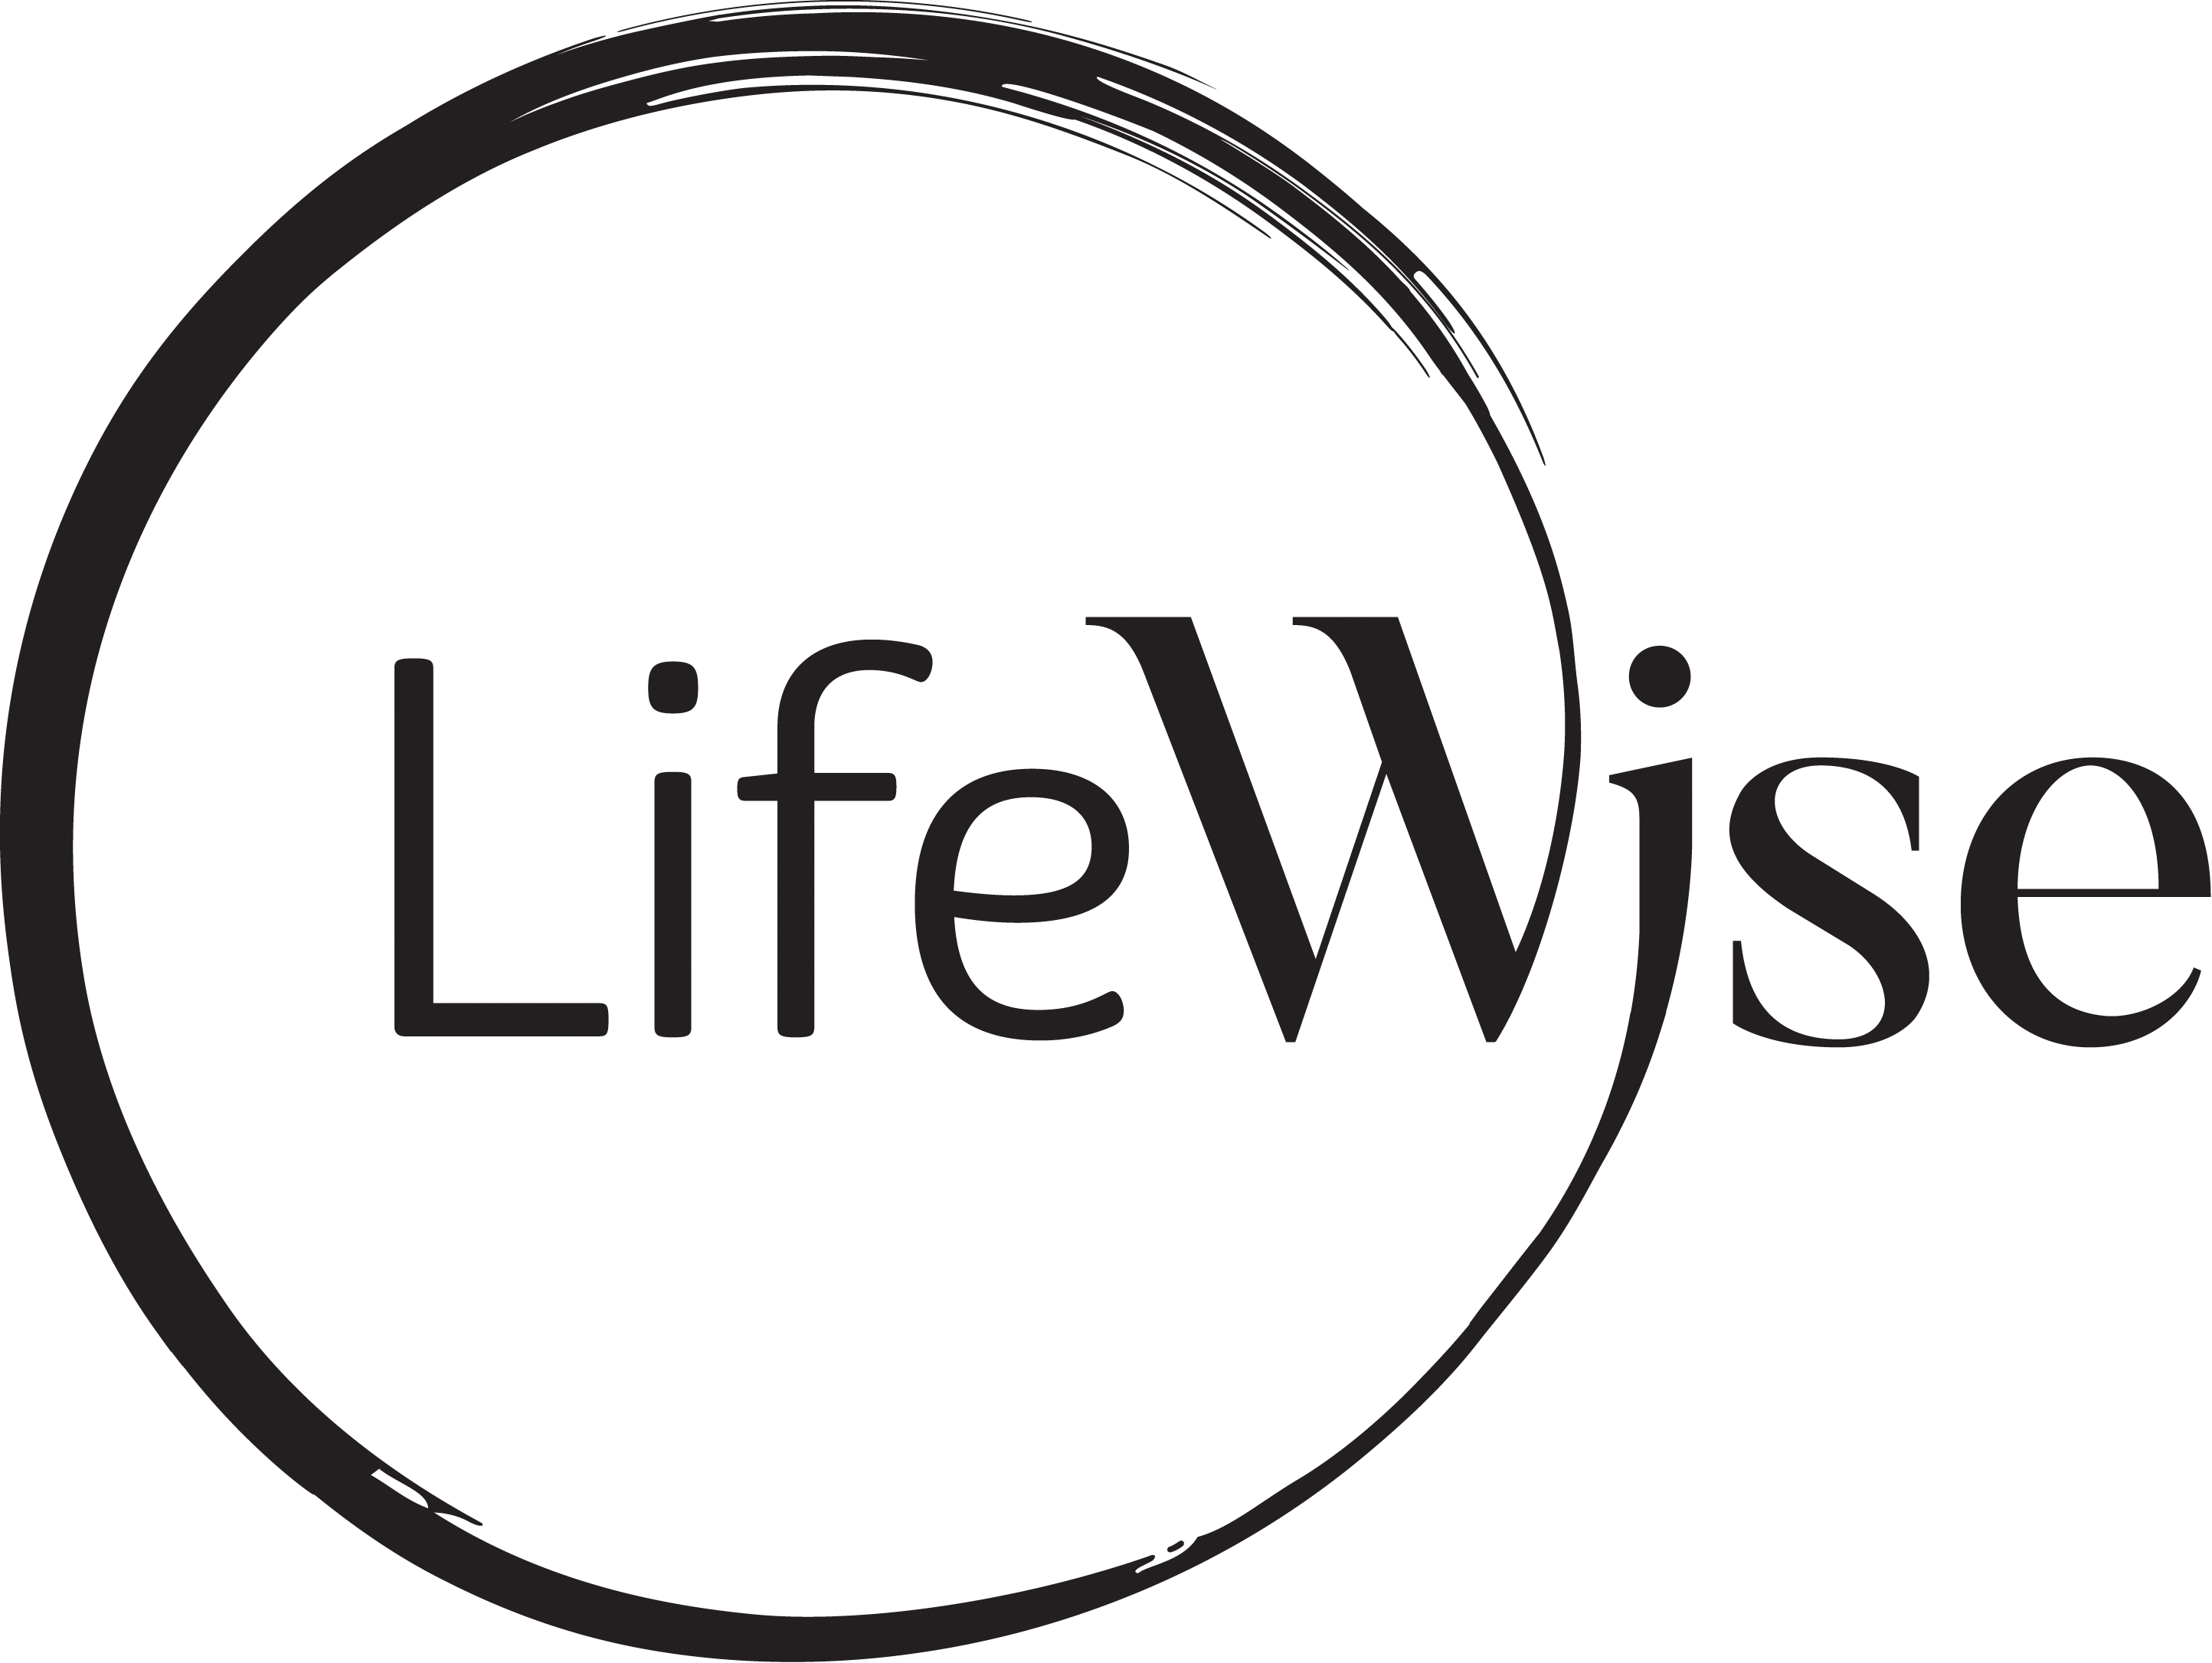 LifeWise, LLC offers online couples course